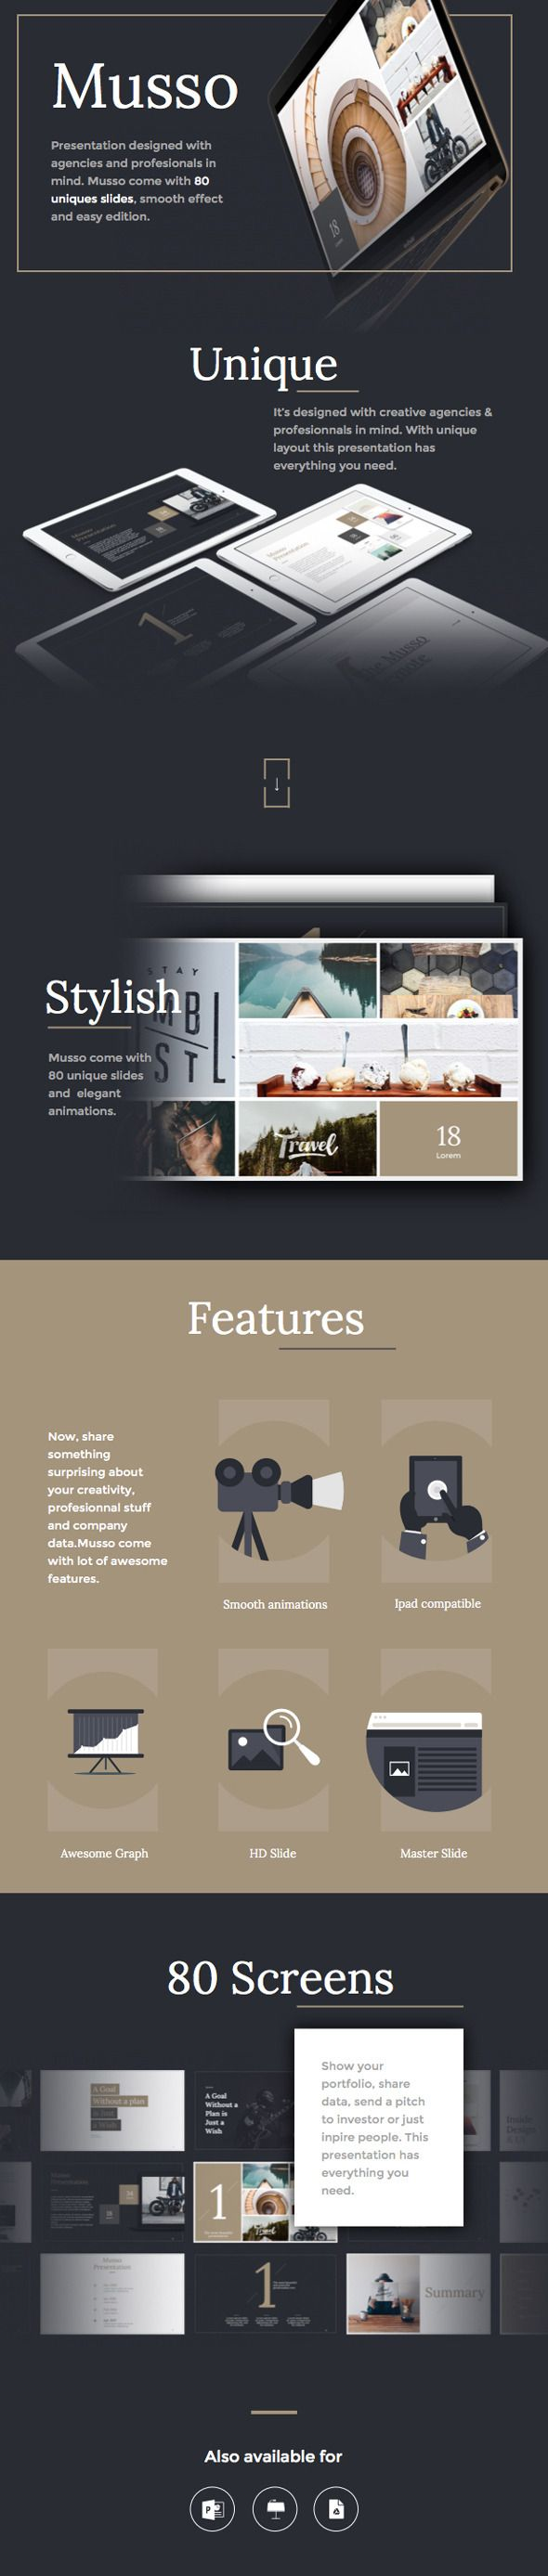 Musso PowerPoint/Keynote presentation design theme from GraphicRiver.